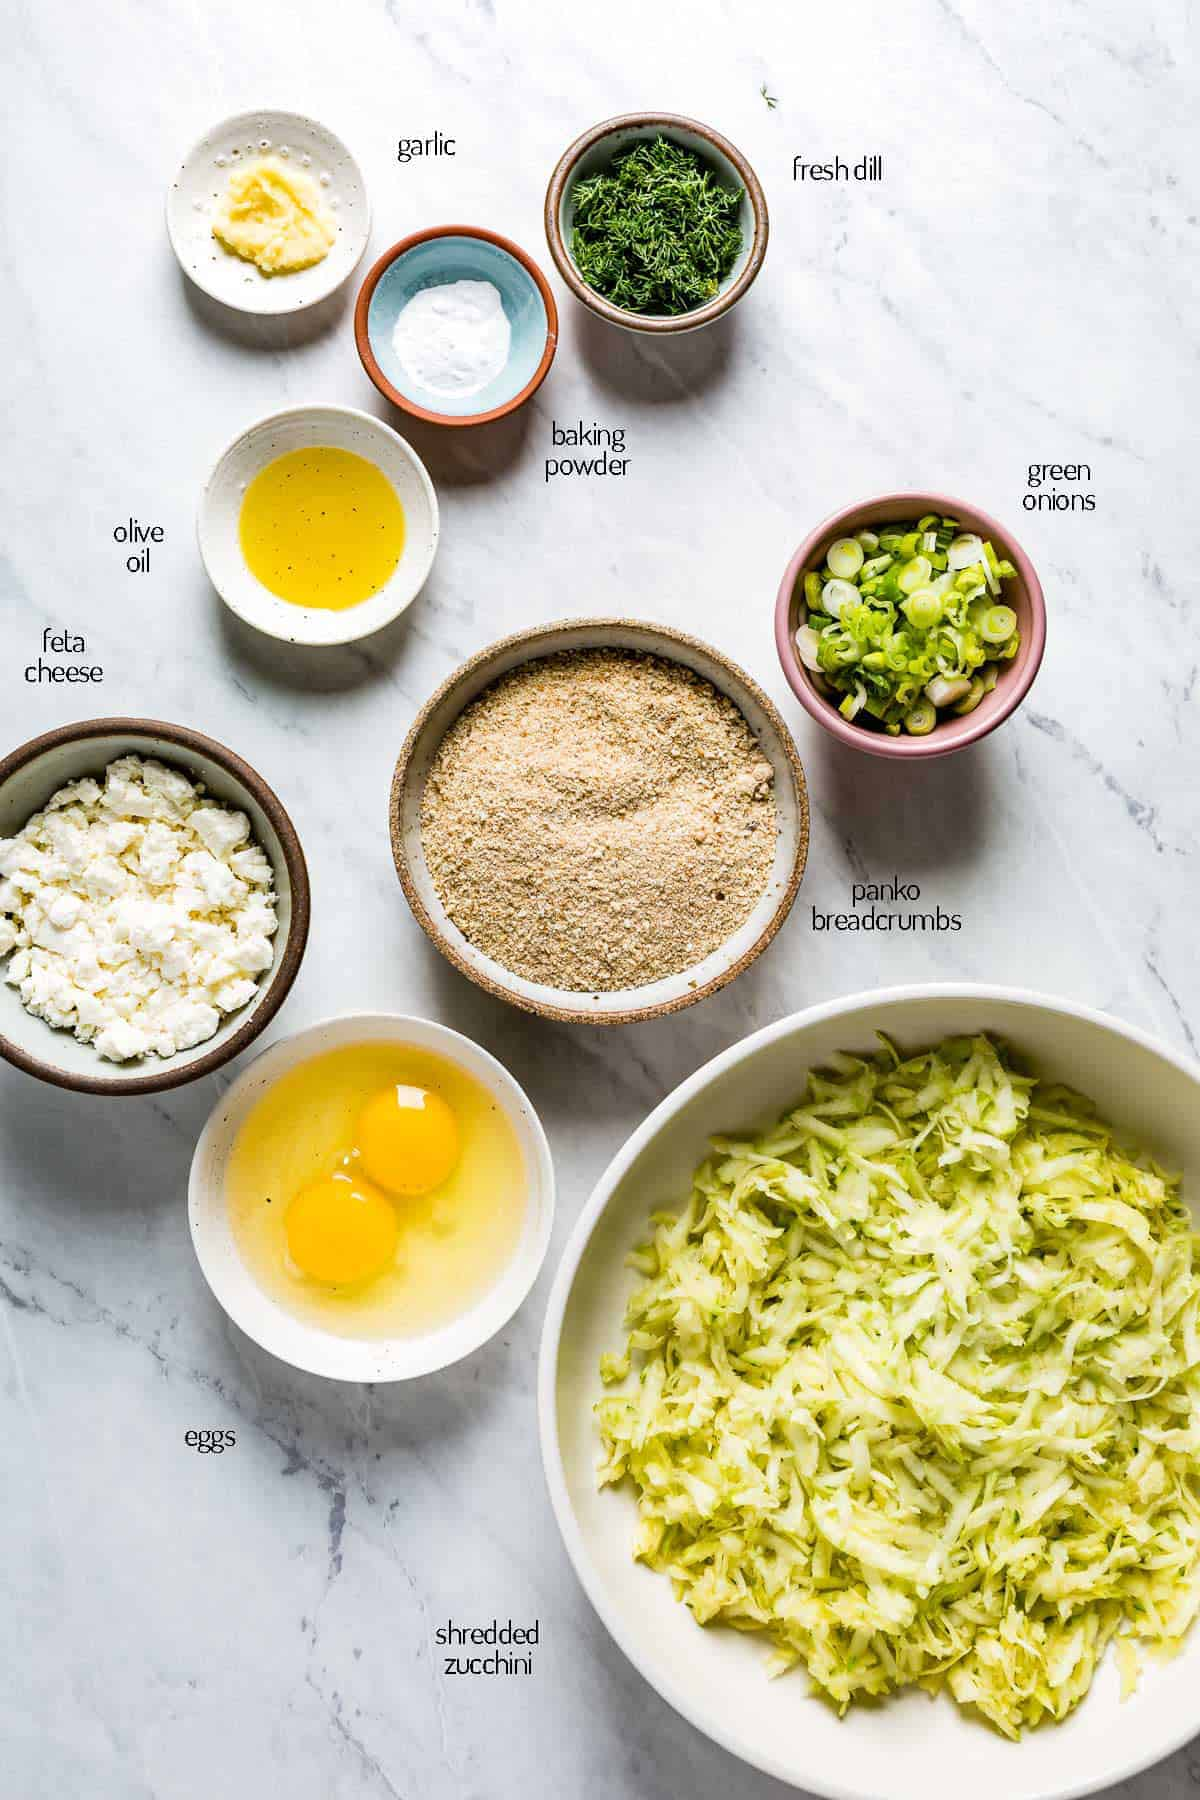 Ingredients for the recipes are placed in individual cups on a marble backdrop